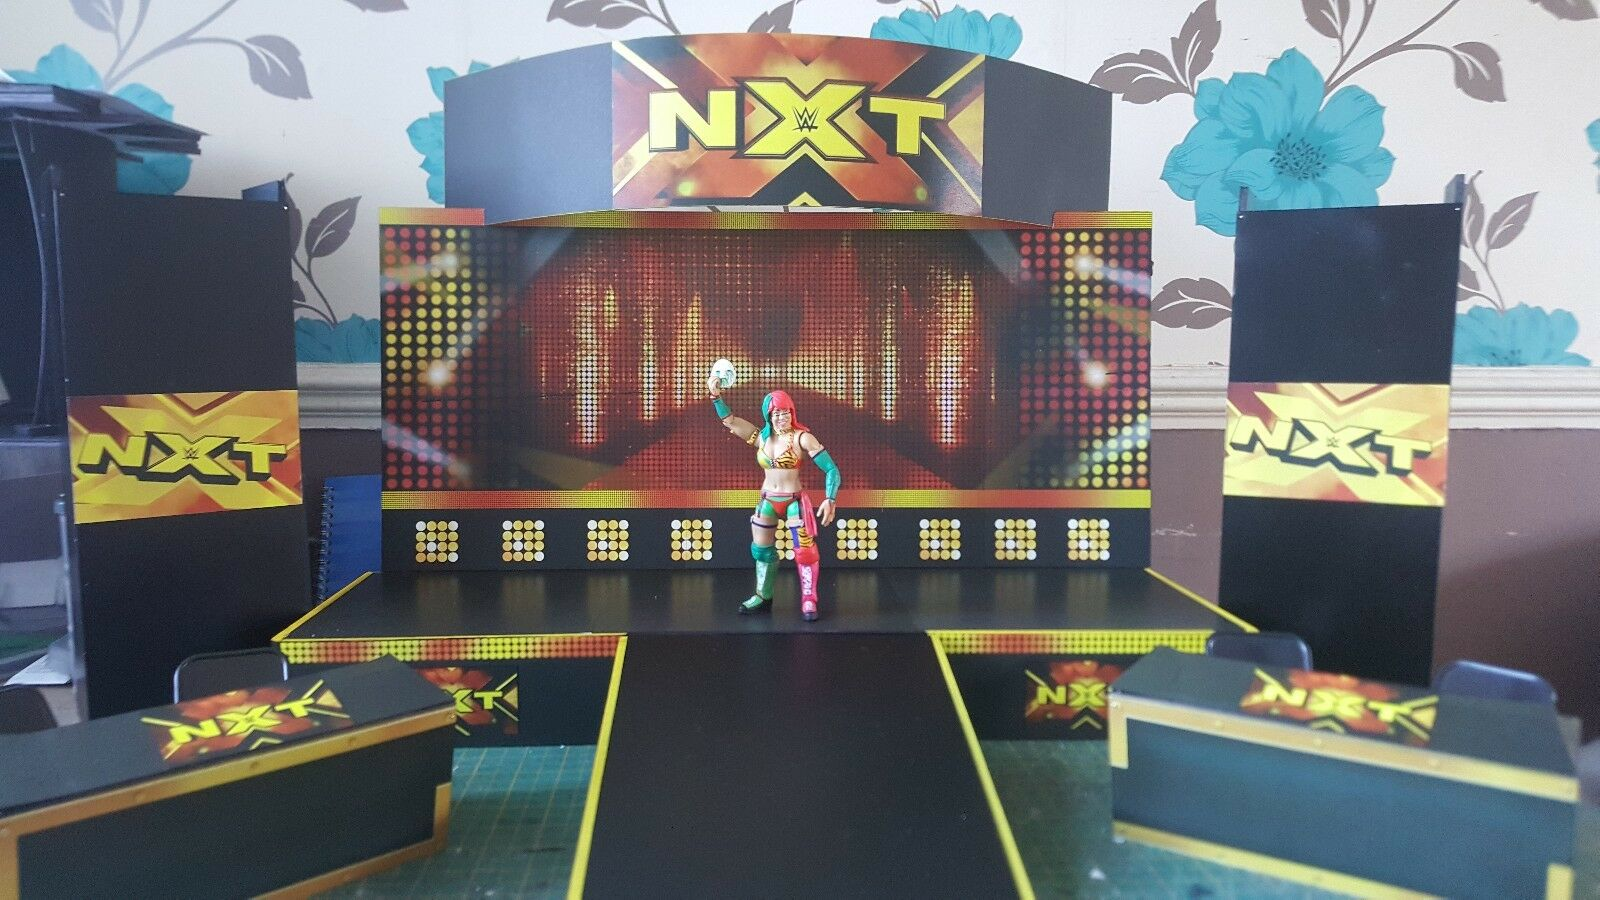 WWE NXT upgrade stage with 2 nxt announcer tables for wrestling figures